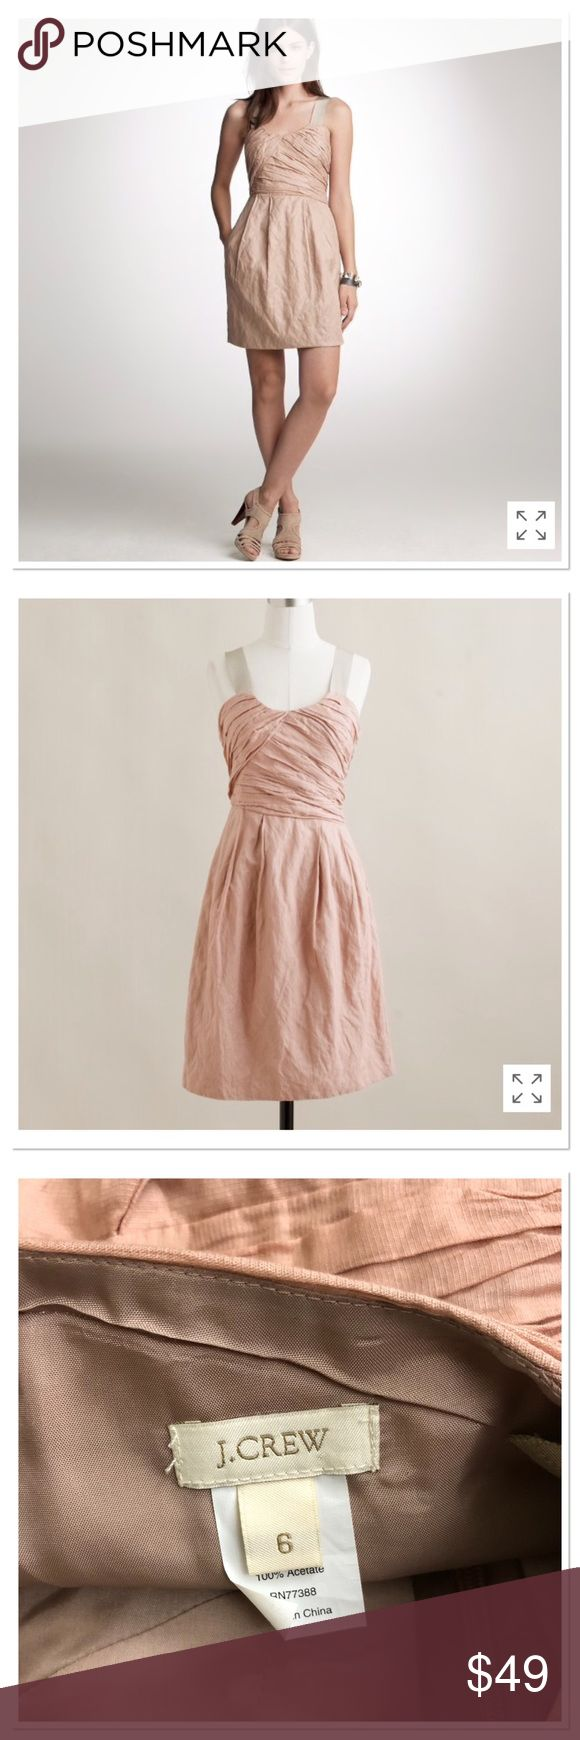 """J. Crew Vivette pleated Cocktail dress blush pink J. Crew Vivette pleated Cocktail dress blush pink. Featuring scoop neck, wide straps, hidden side zip, fully lined, distinctively tousled look, with ultra fine metallic thread, cotton, gives a crinkled look. Beautiful special occasion dress, cocktail, graduation, cute dress Size 6.  Pit to pit: 17,5"""" Length: 36""""  Worn once, like new. J. Crew Dresses Midi"""